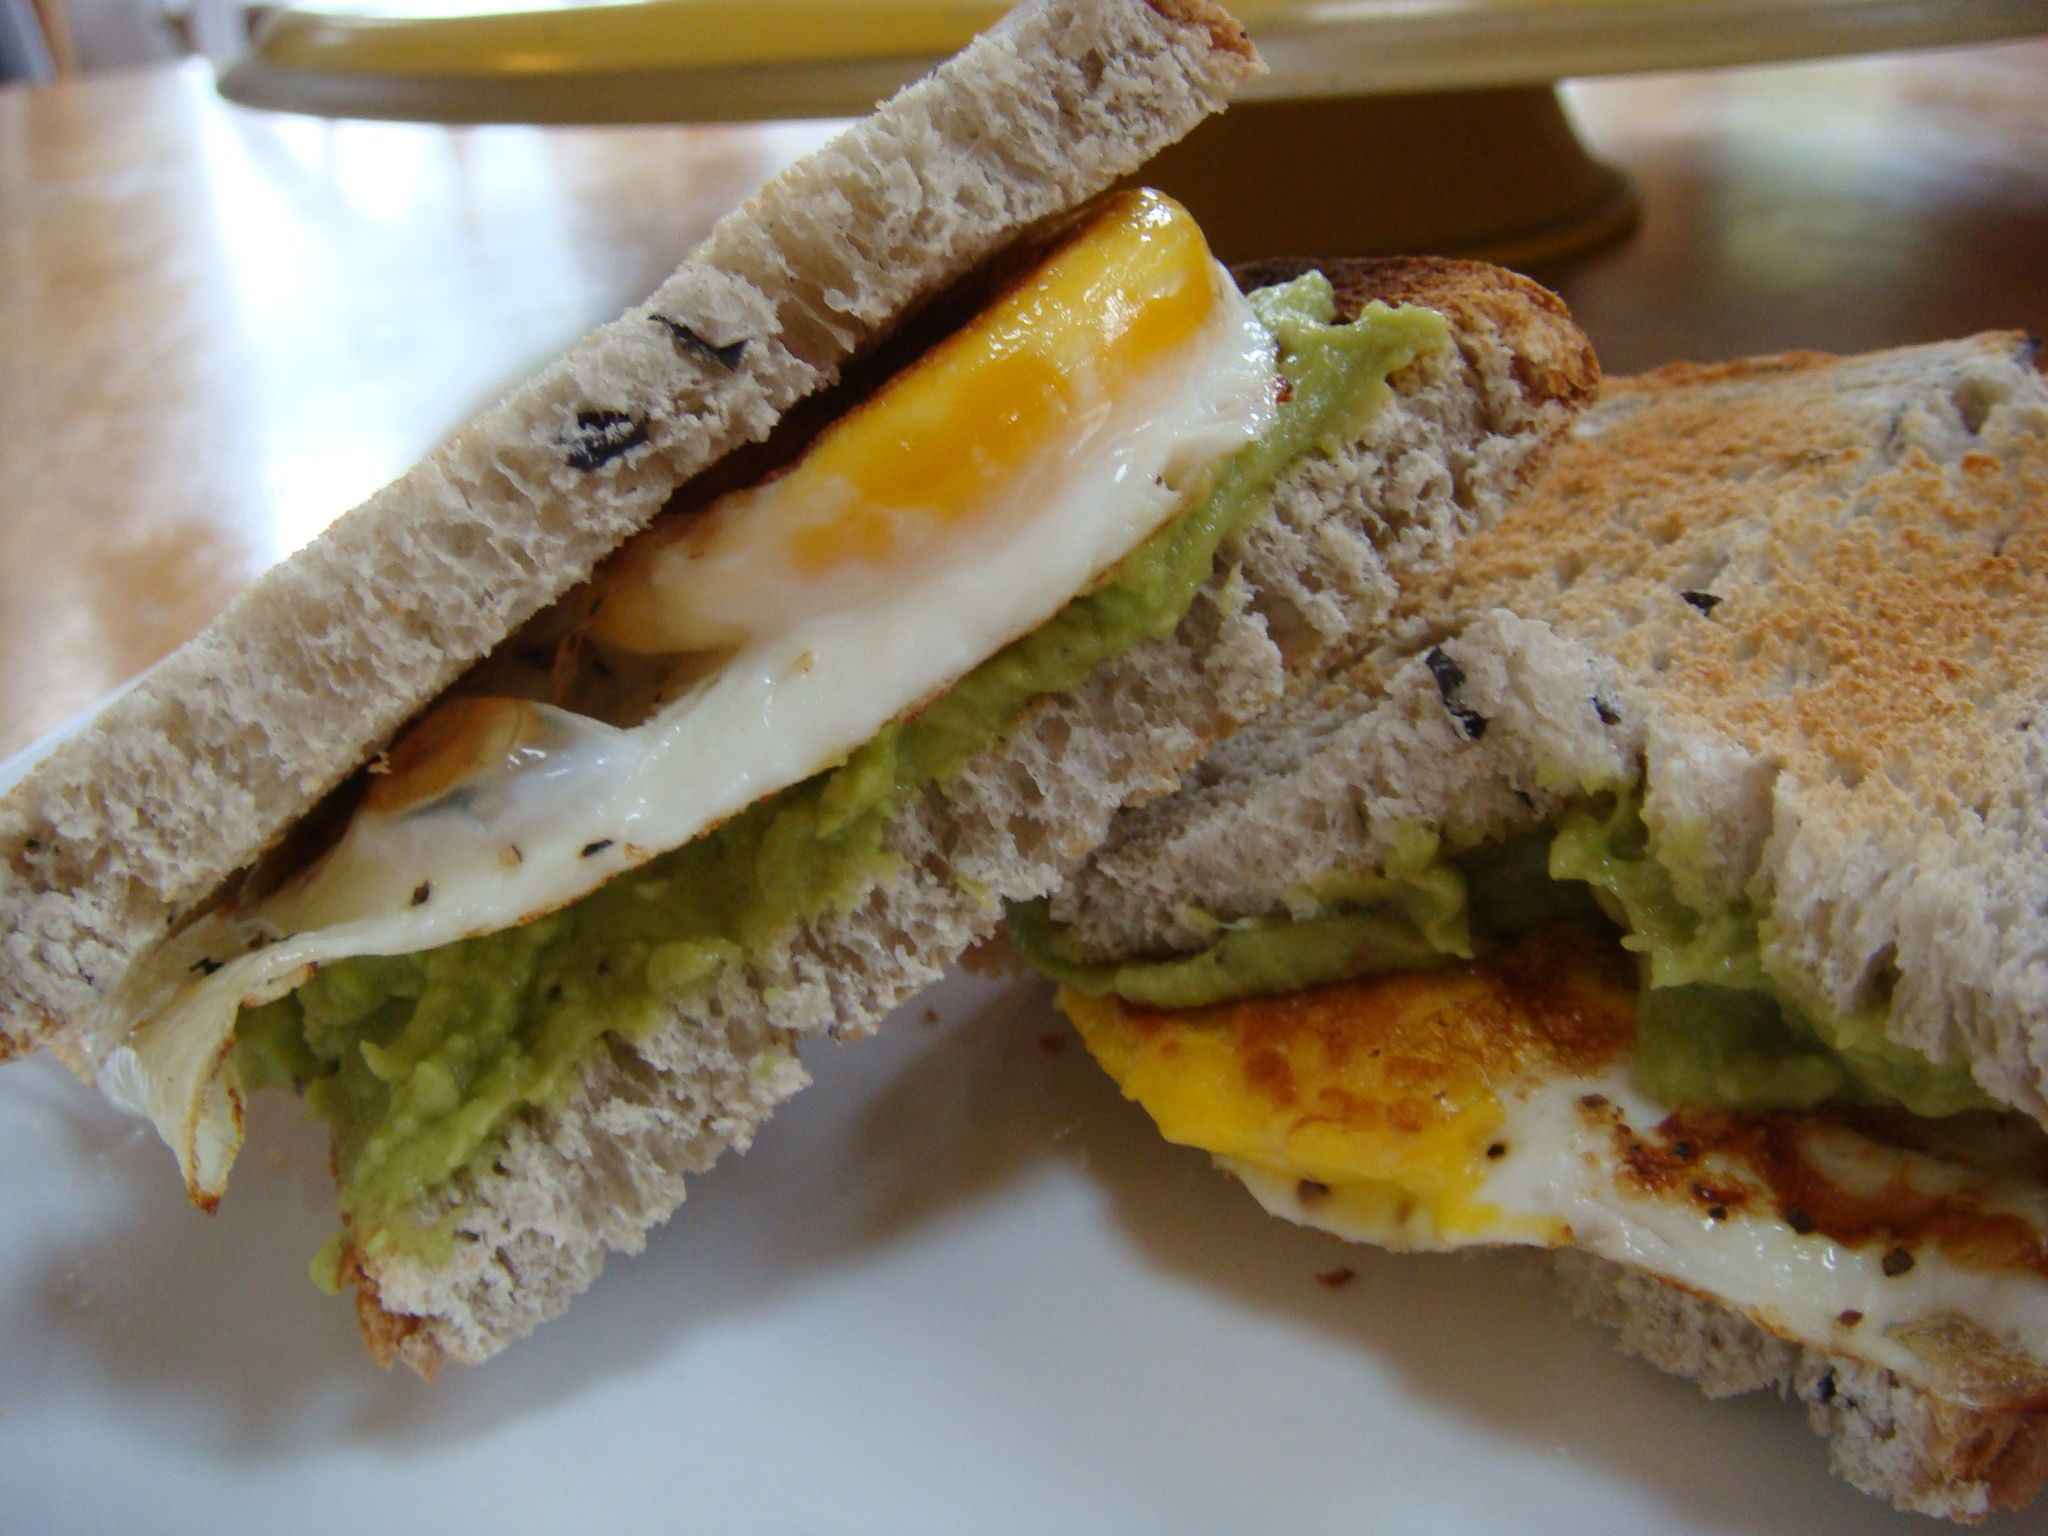 Leftover guacamole can be used as a garnish on an egg sandwich! Delicious!!